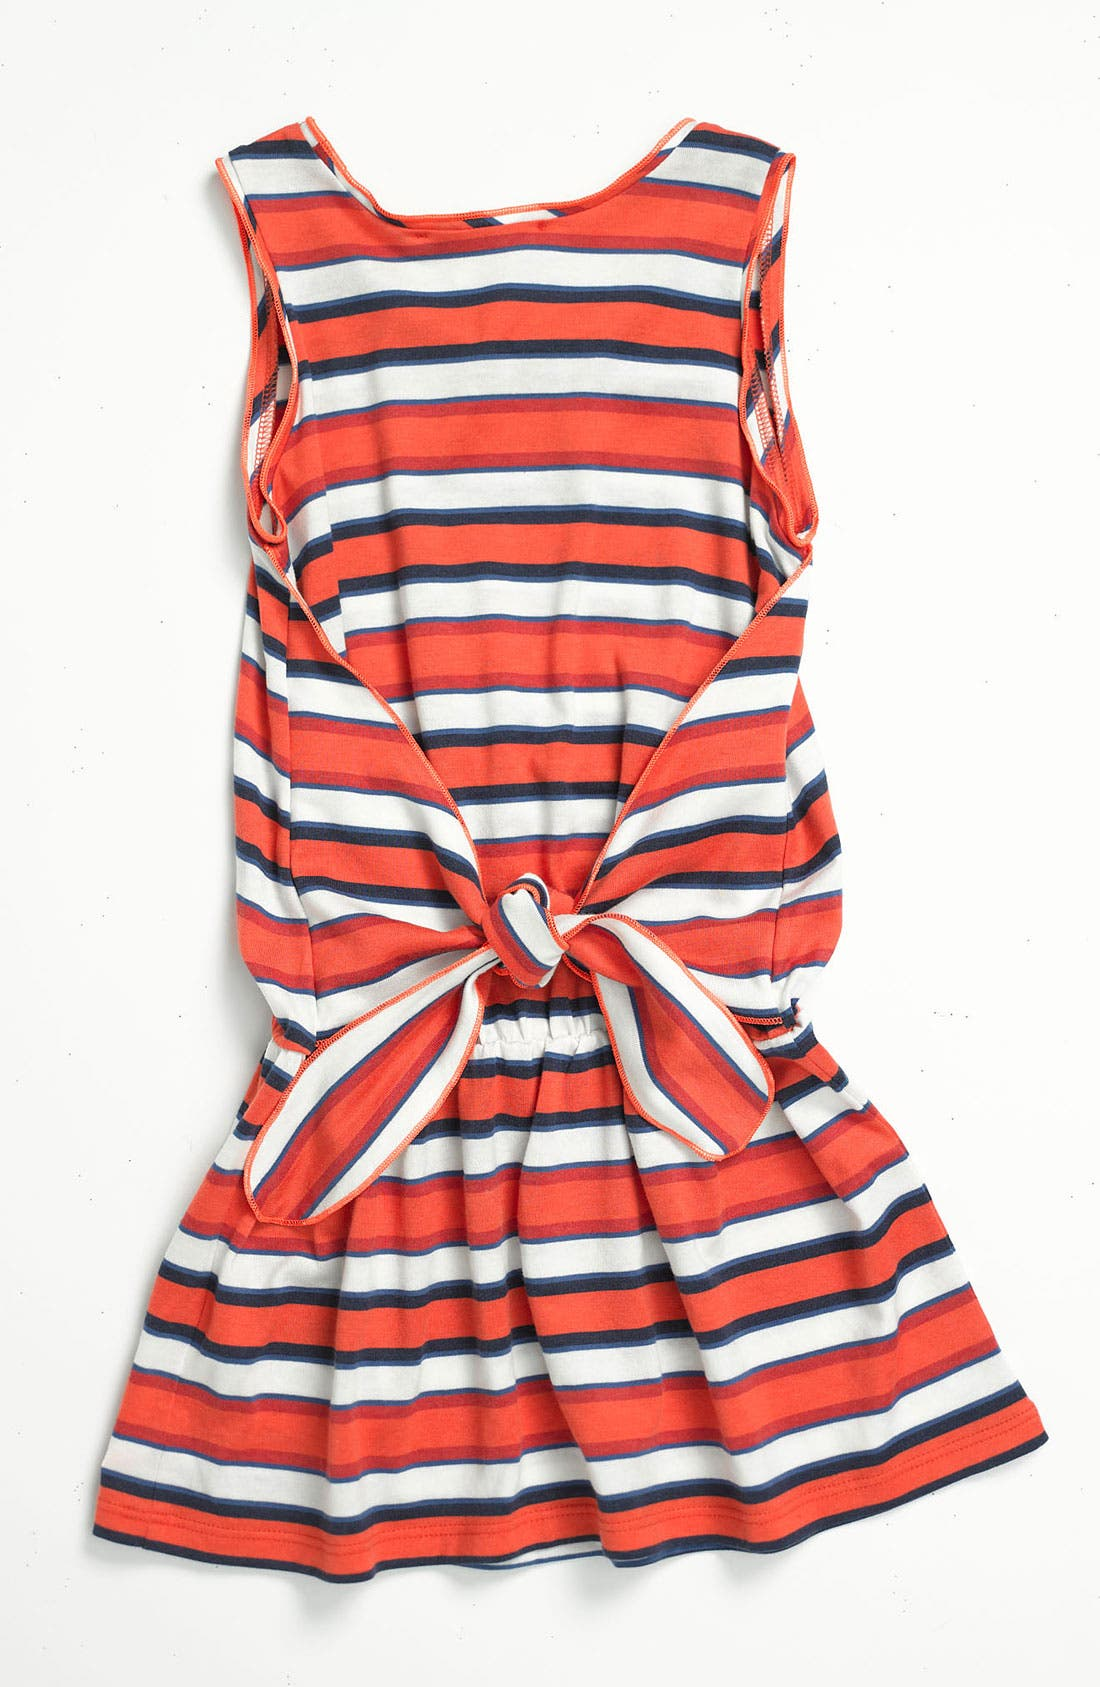 Alternate Image 1 Selected - LITTLE MARC JACOBS Sleeveless Dress (Little Girls & Big Girls)